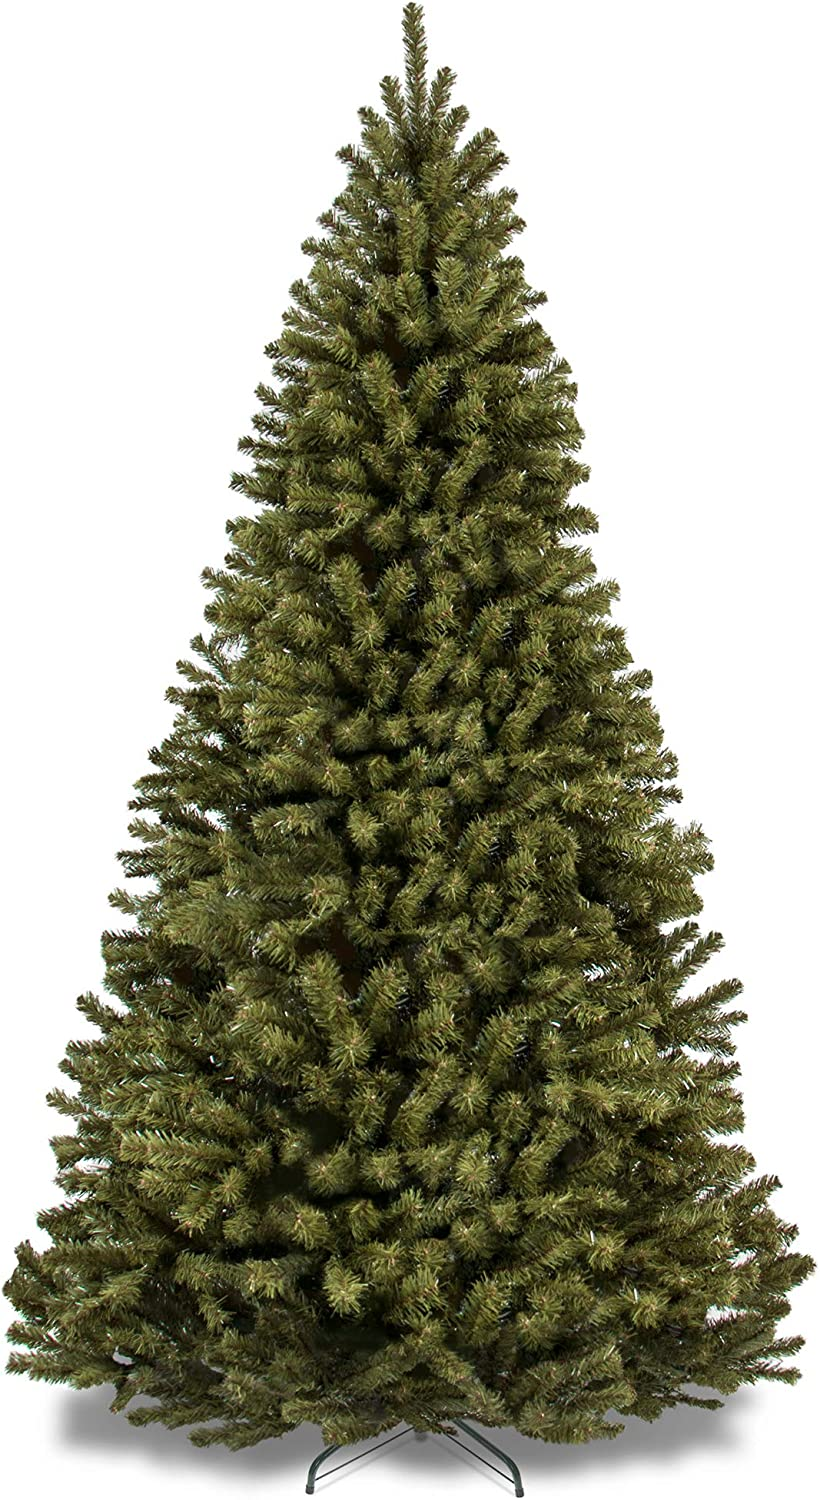 Best Choice Products 9ft Spruce Hinged Artificial Christmas Tree w/Easy Assembly, Foldable Stand